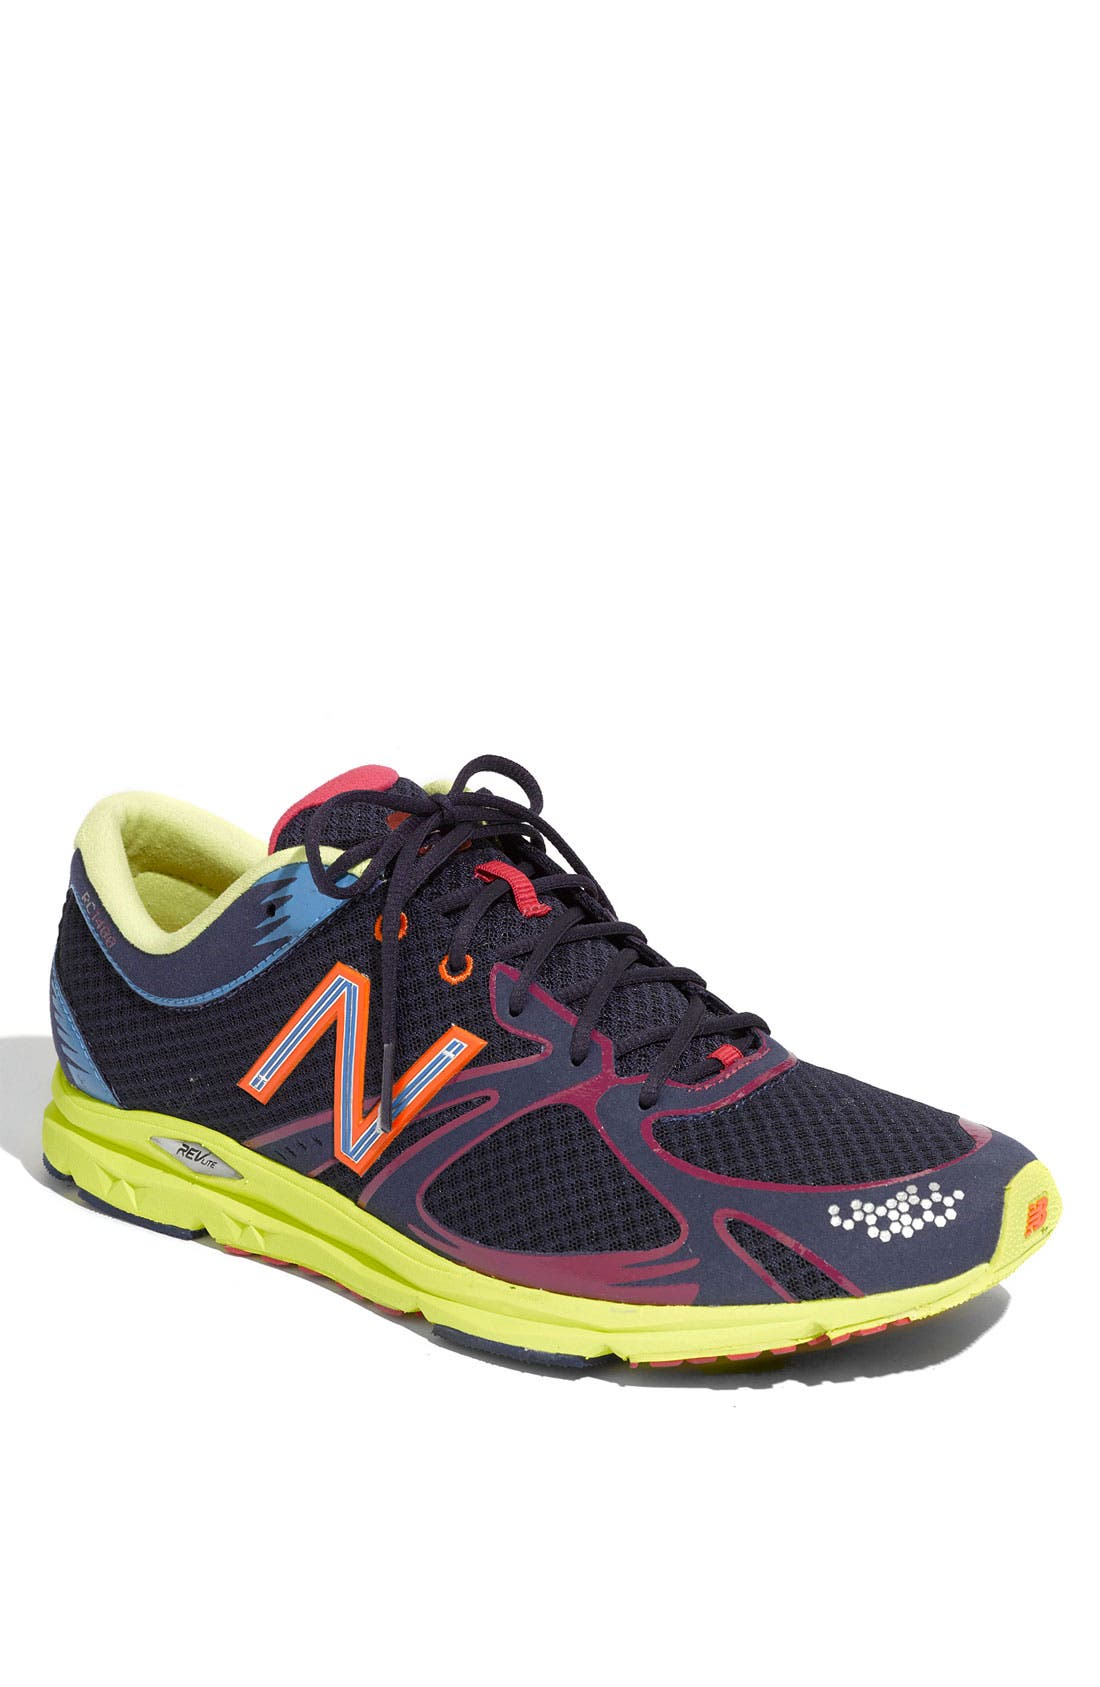 Main Image - New Balance '1400' Running Shoe (Men)